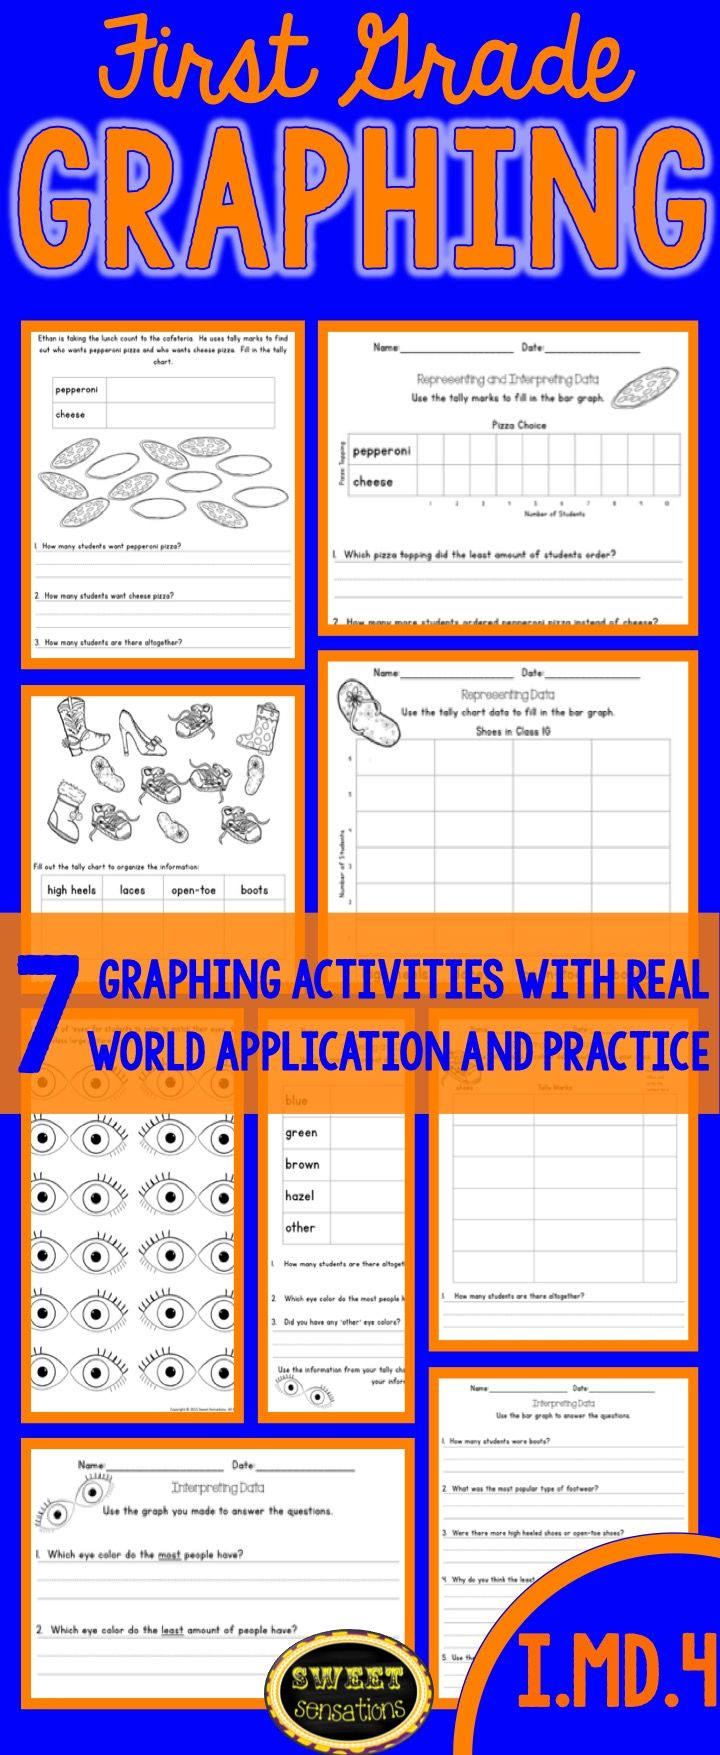 True clipart data handling And Graphing Handling Grade First